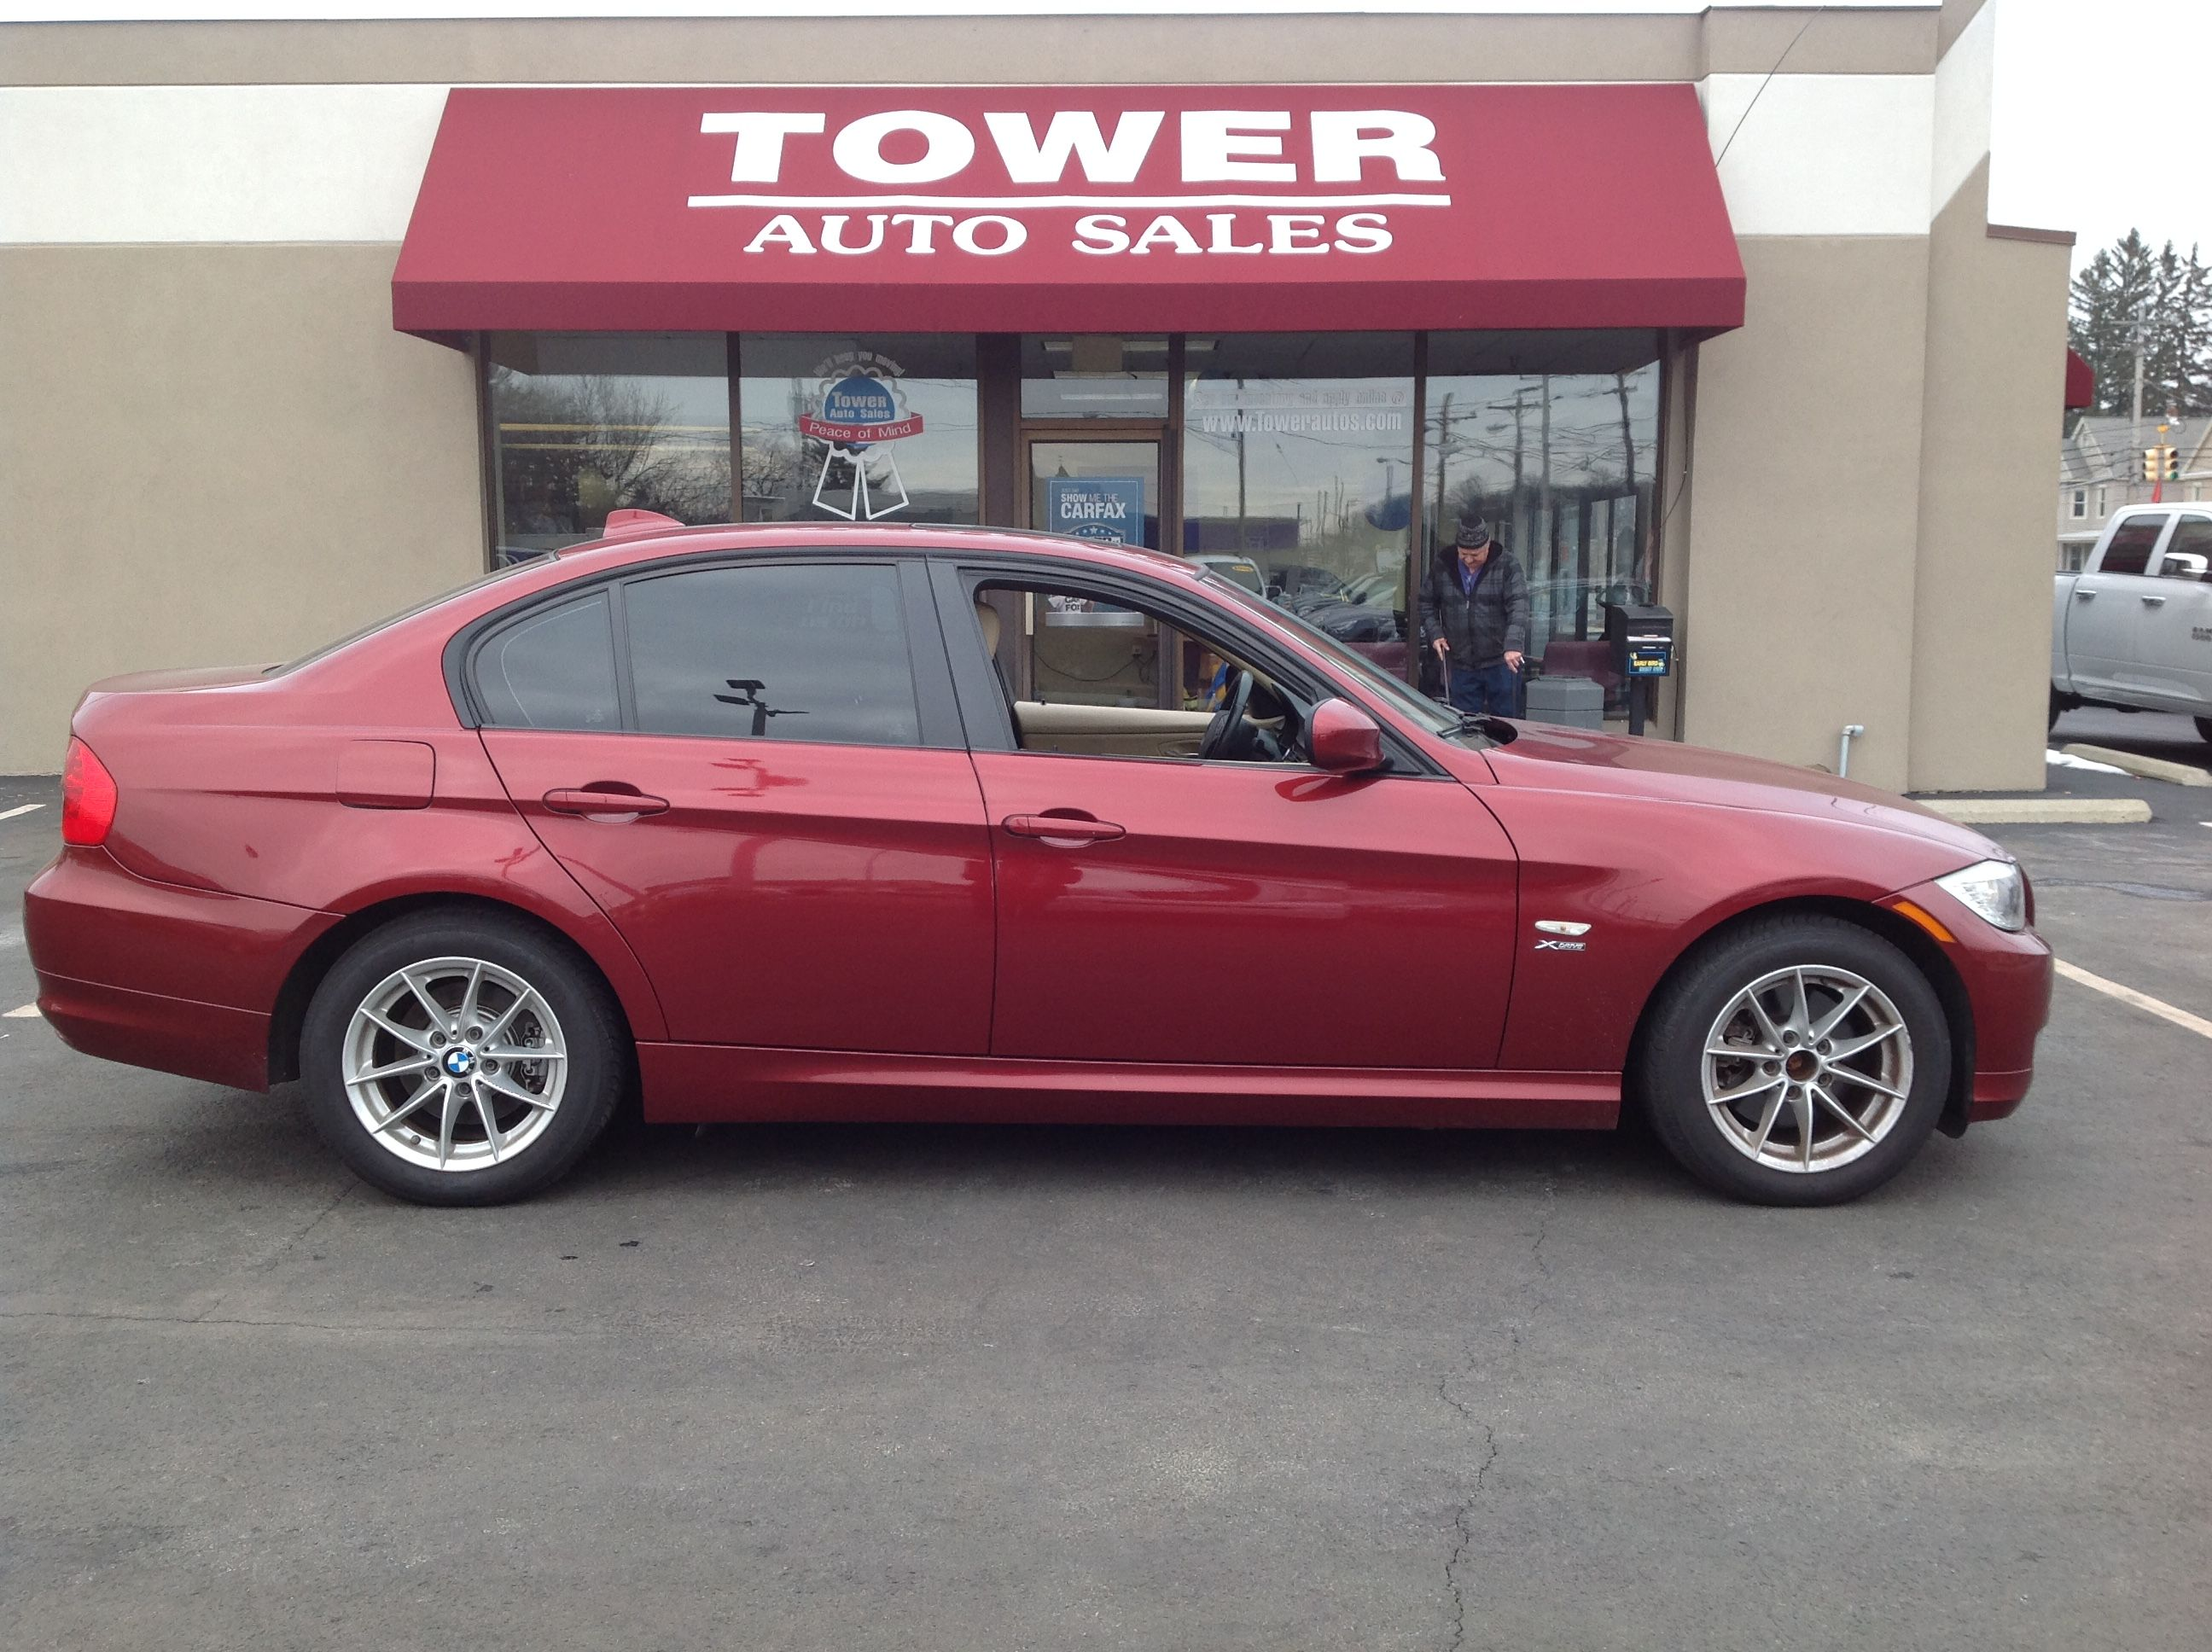 Tower Auto Sales >> Pin By Tower Auto Sales On Luxury Vehicles Luxury Cars